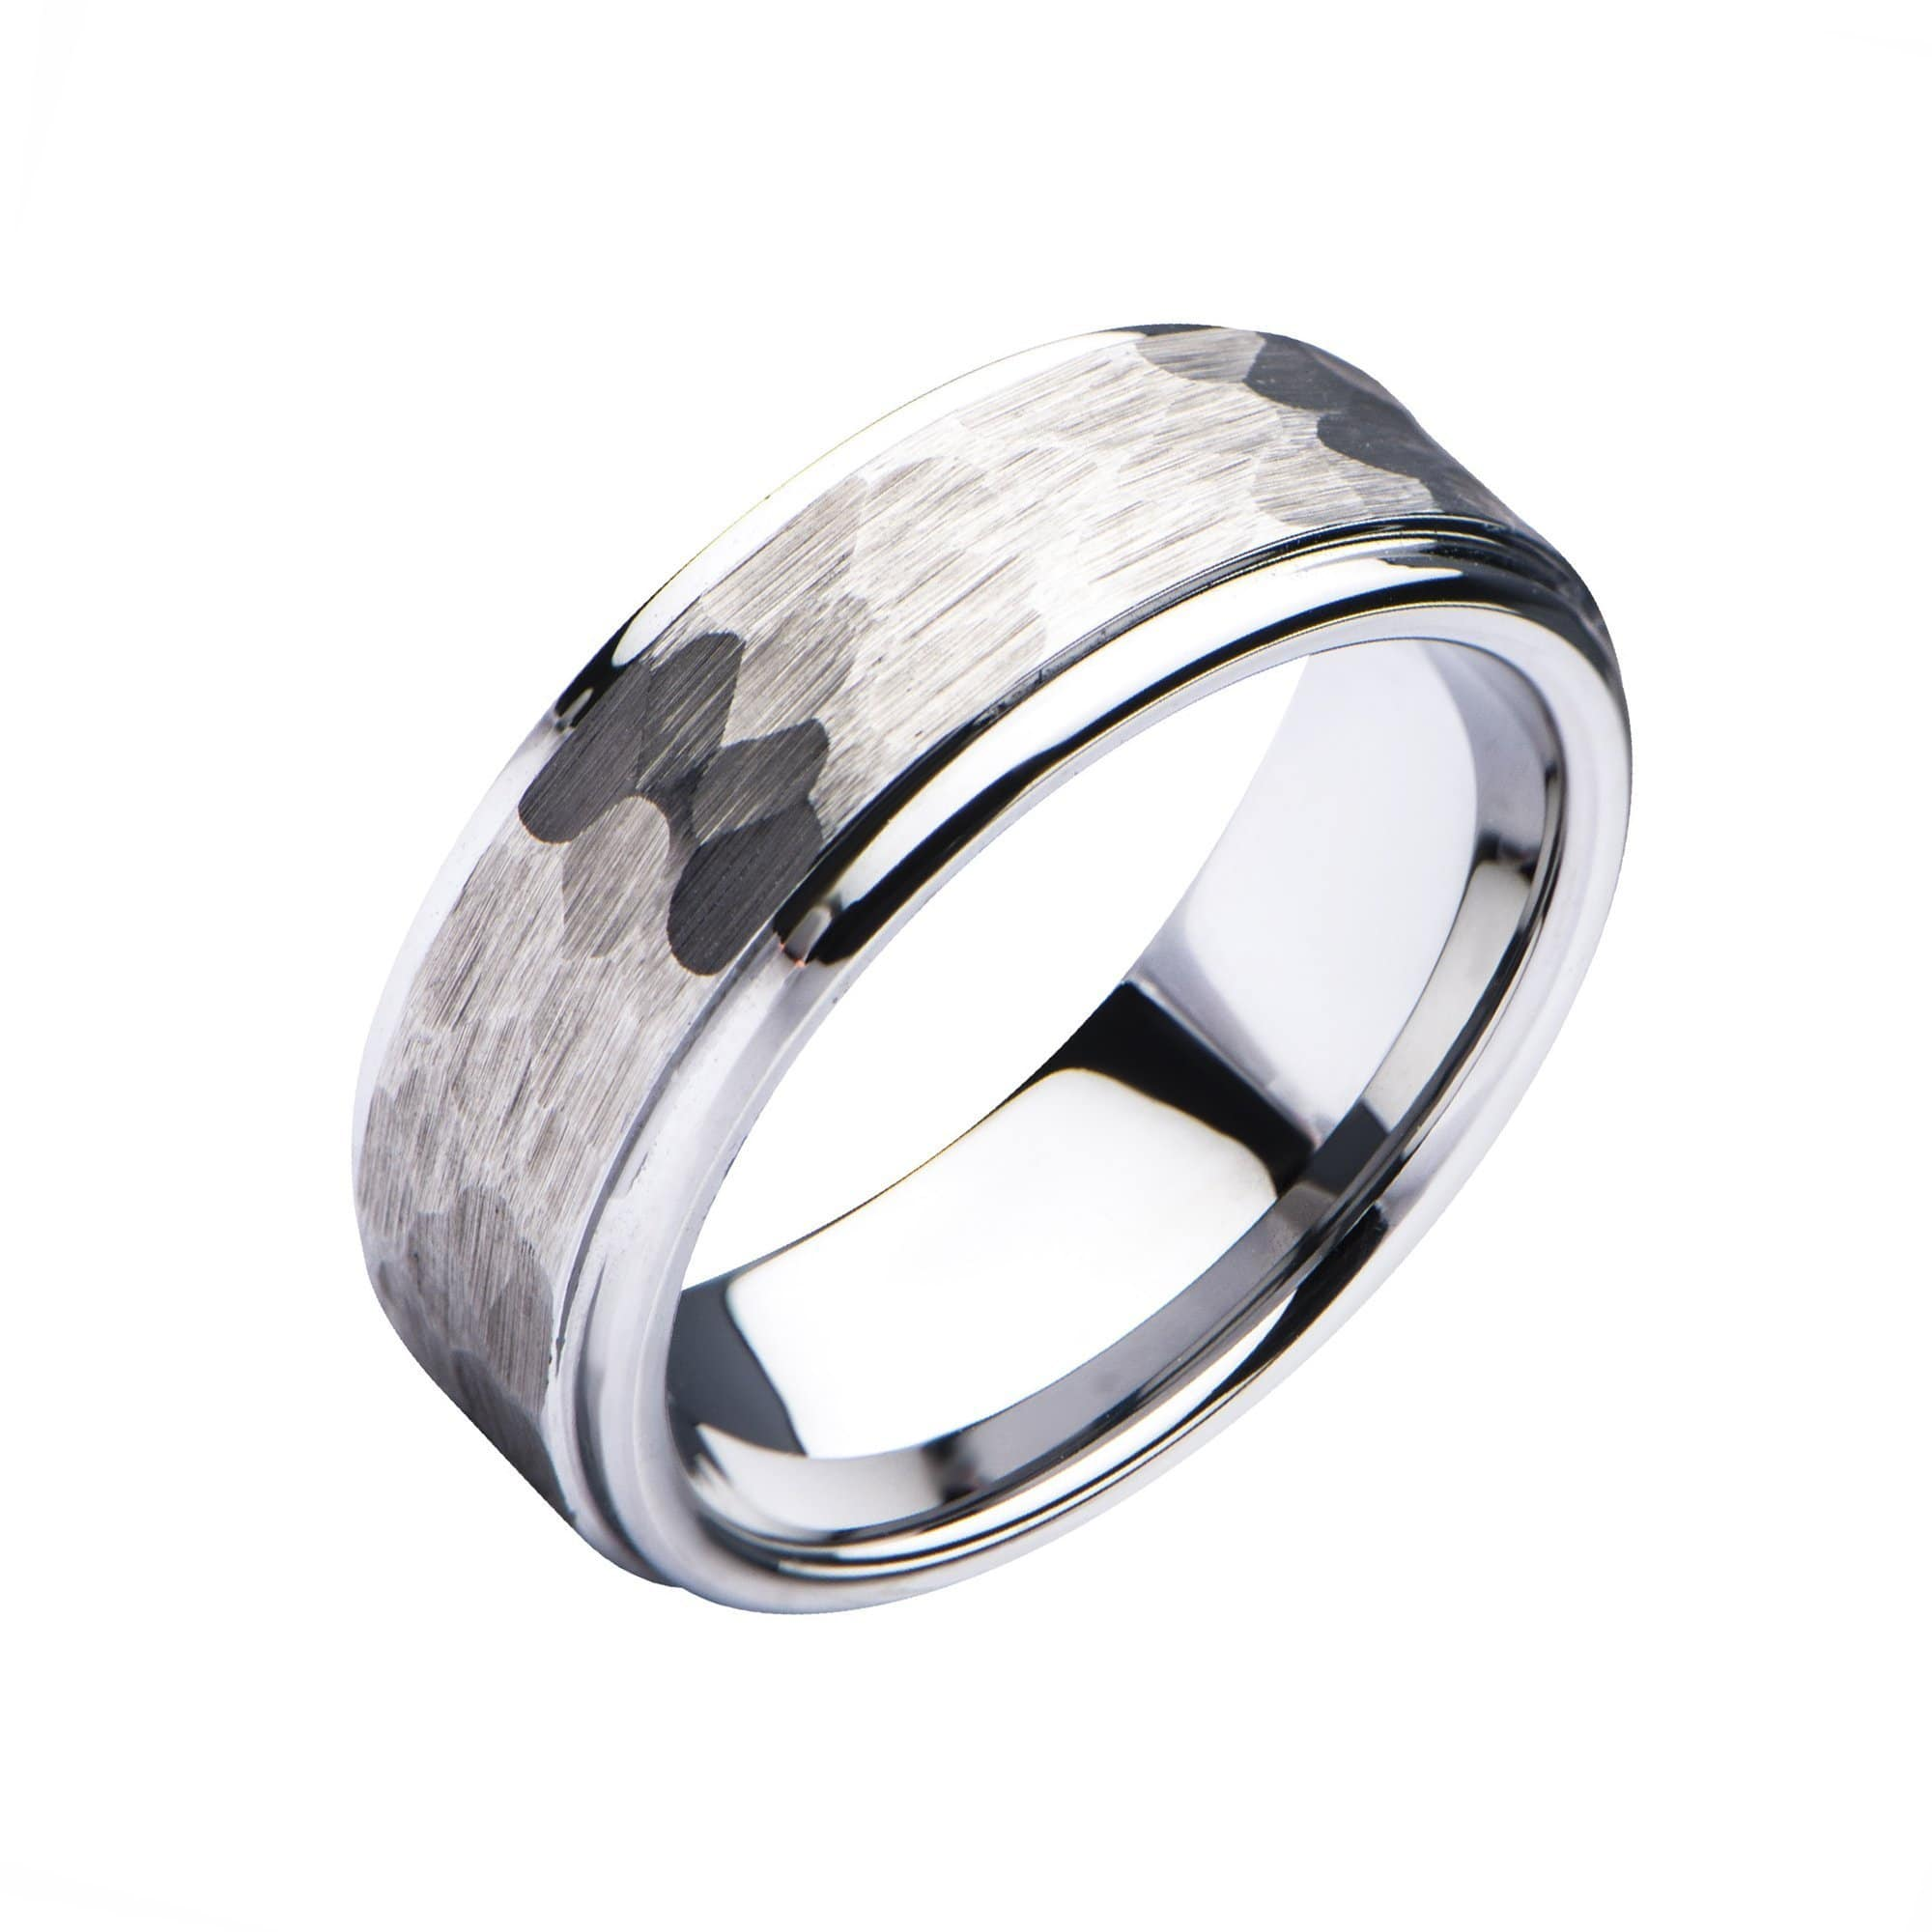 Silver Stainless Steel Hammered Finish Polished Wedding Band Ring